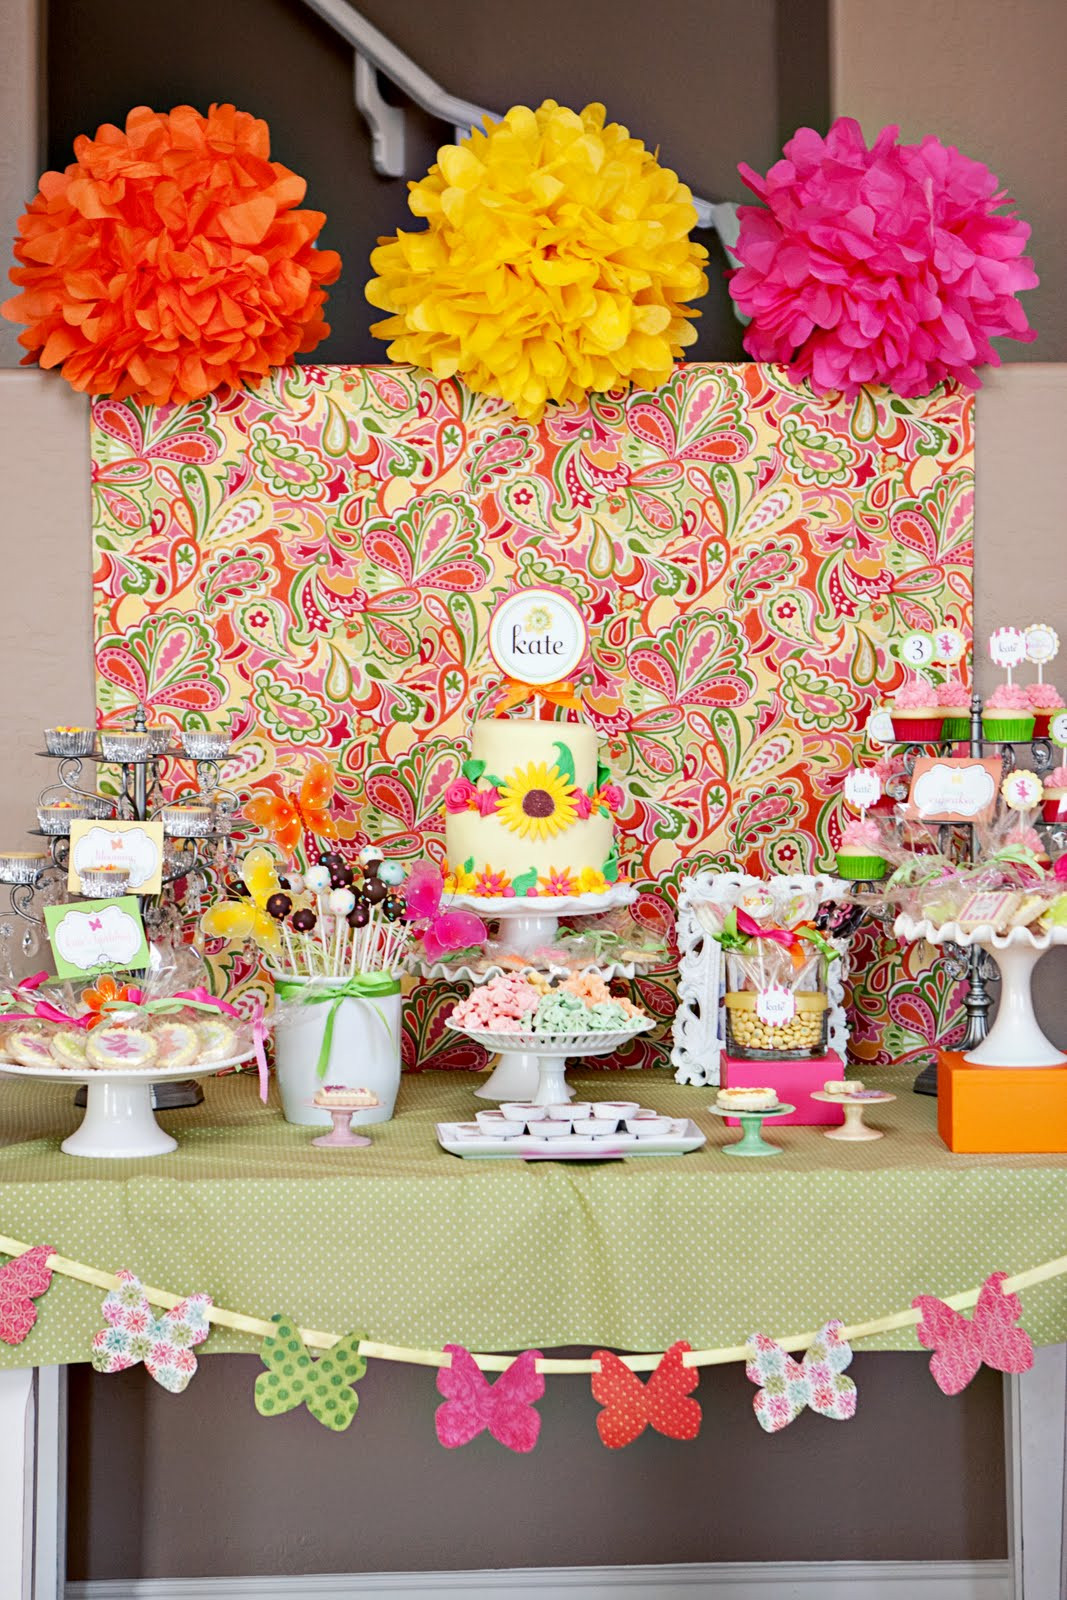 Best ideas about Fairy Birthday Party . Save or Pin Kate's Fairy Garden Birthday Party… Now.